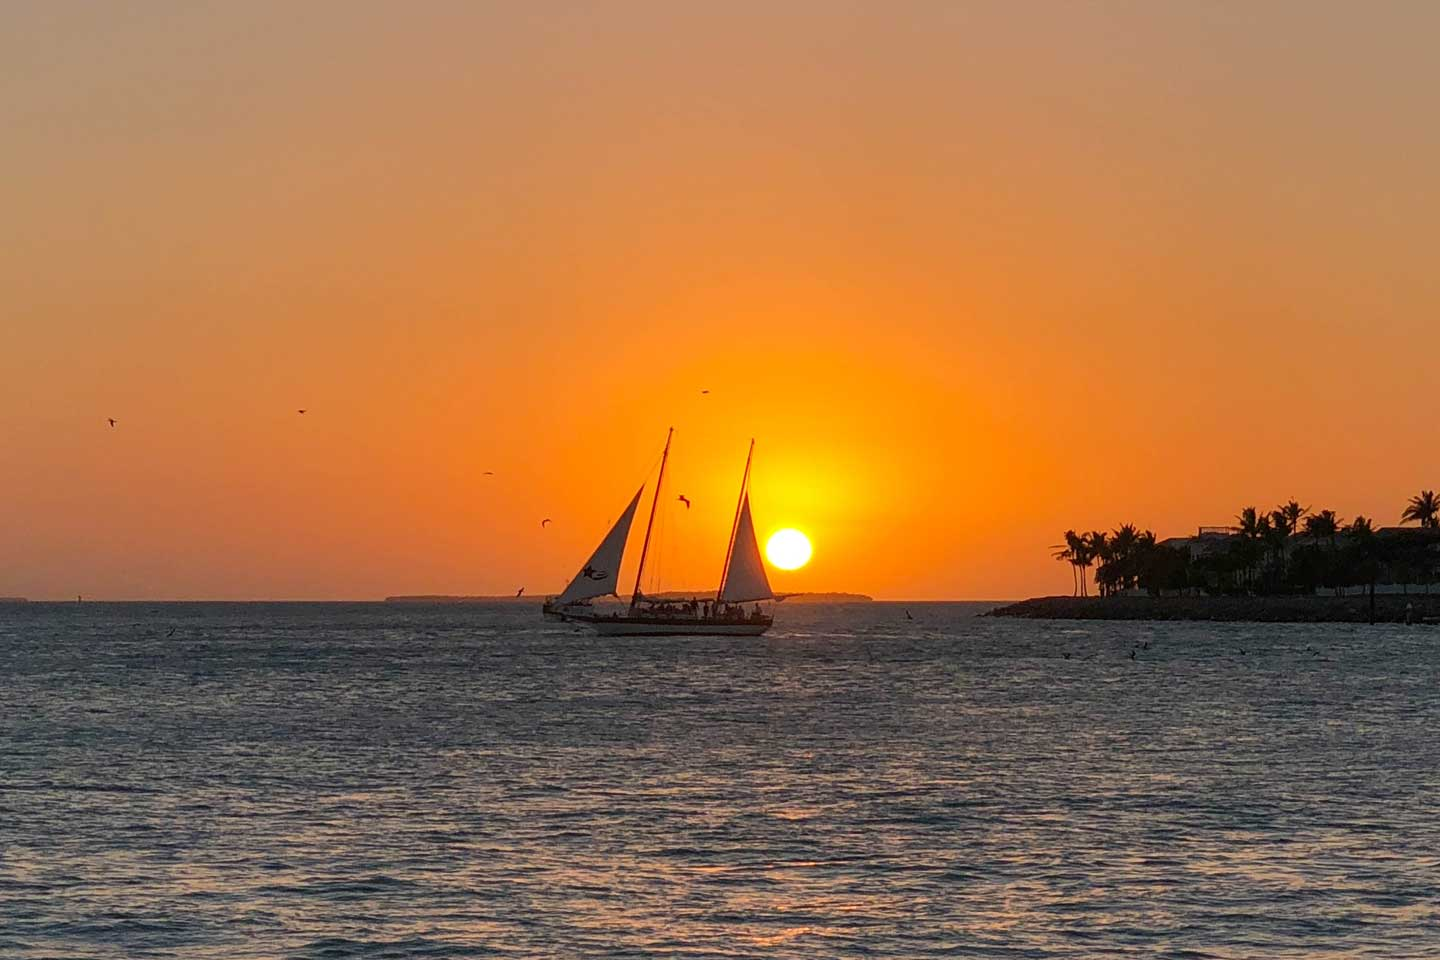 Sunset in Key West with the ocean in the foreground and a boat passing by the orange sun just before it sets.